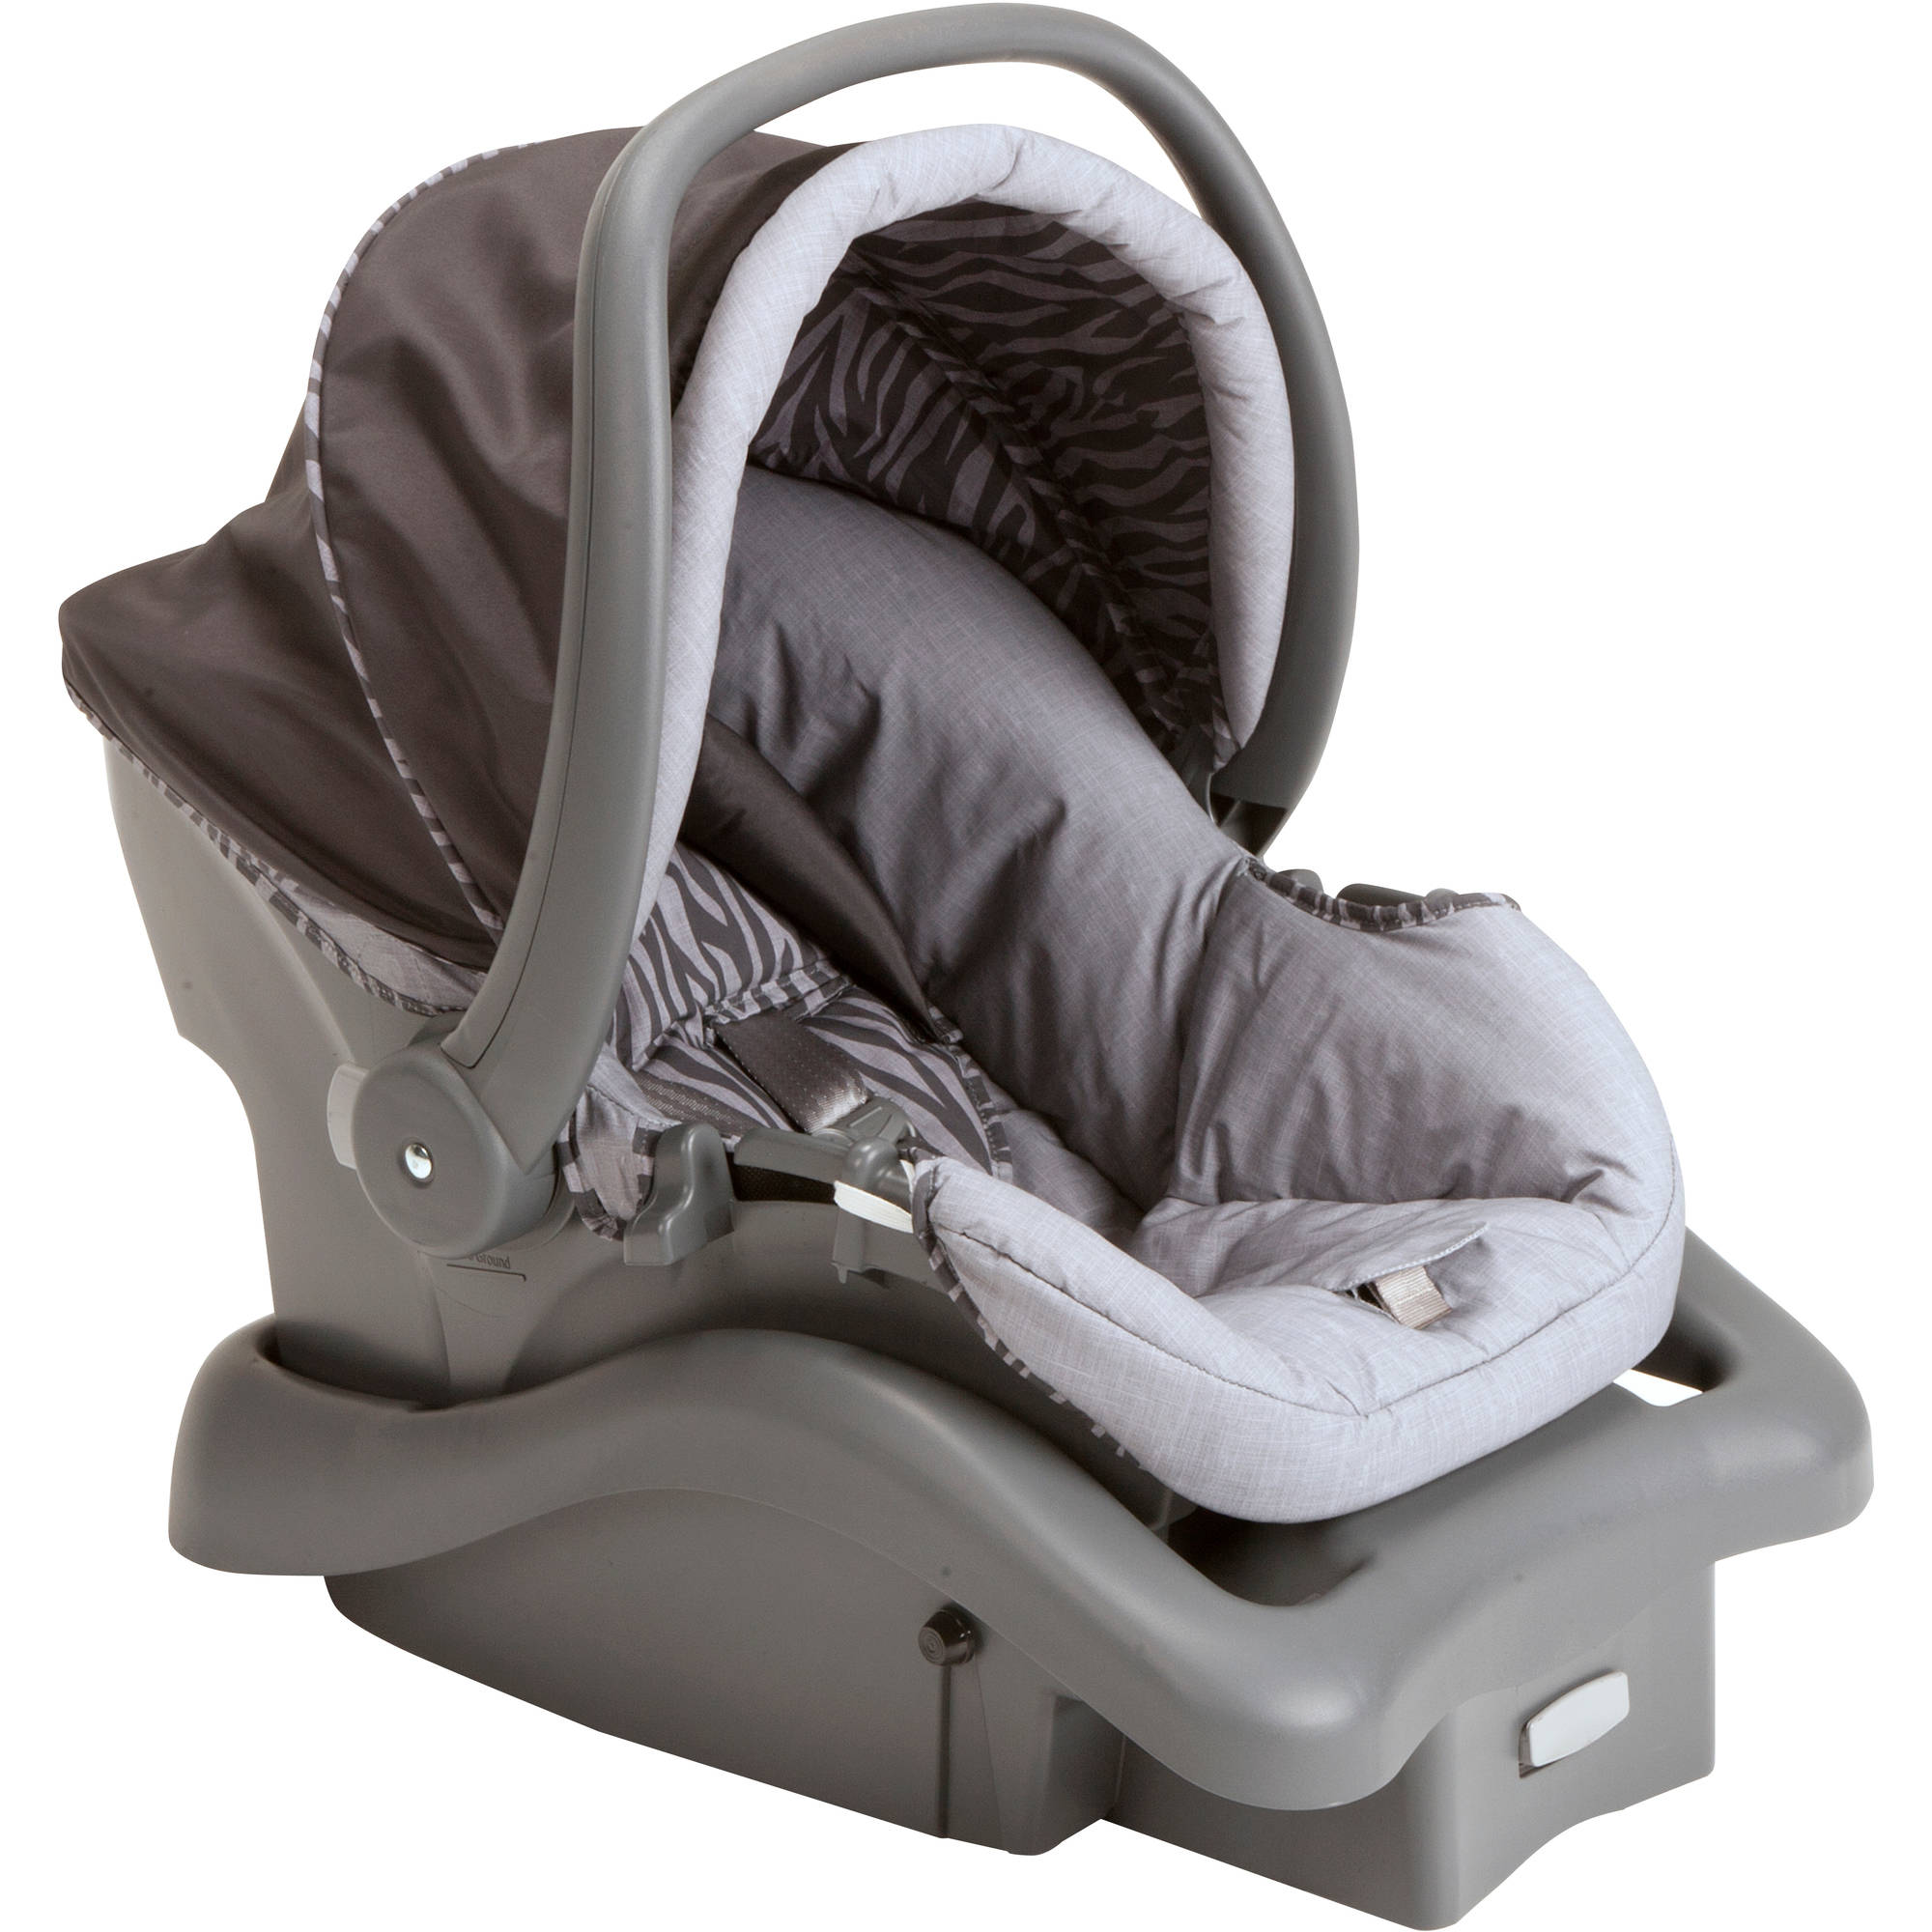 Cosco Light N Comfy LX Infant Car Seat (Choose your Pattern)